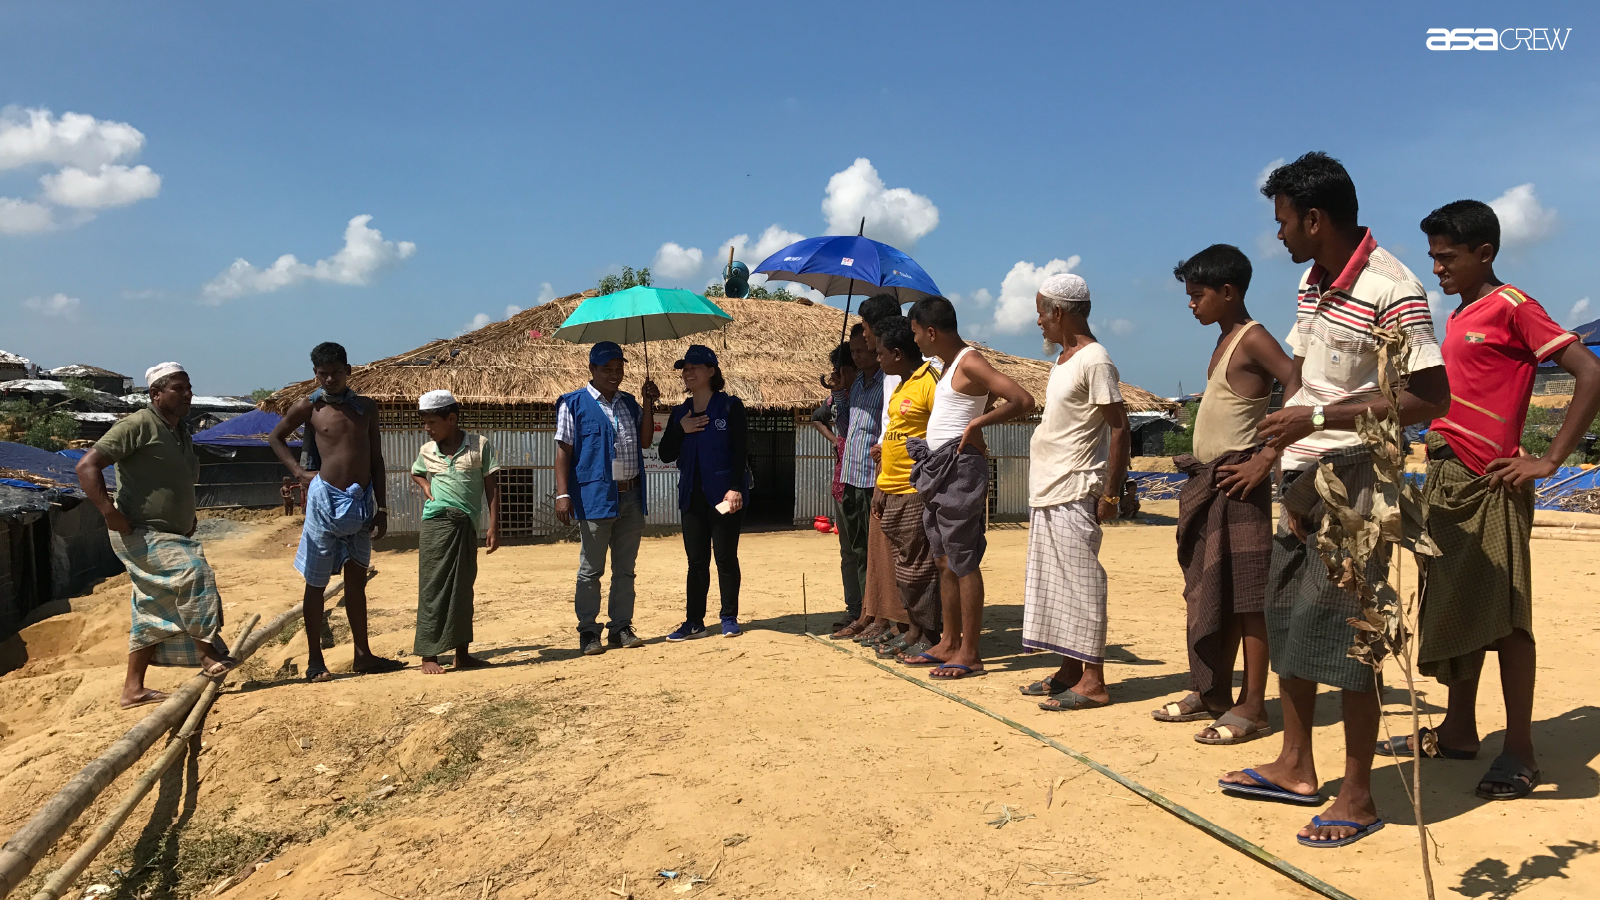 One Day with an Architect: One Day in a Migration Camp